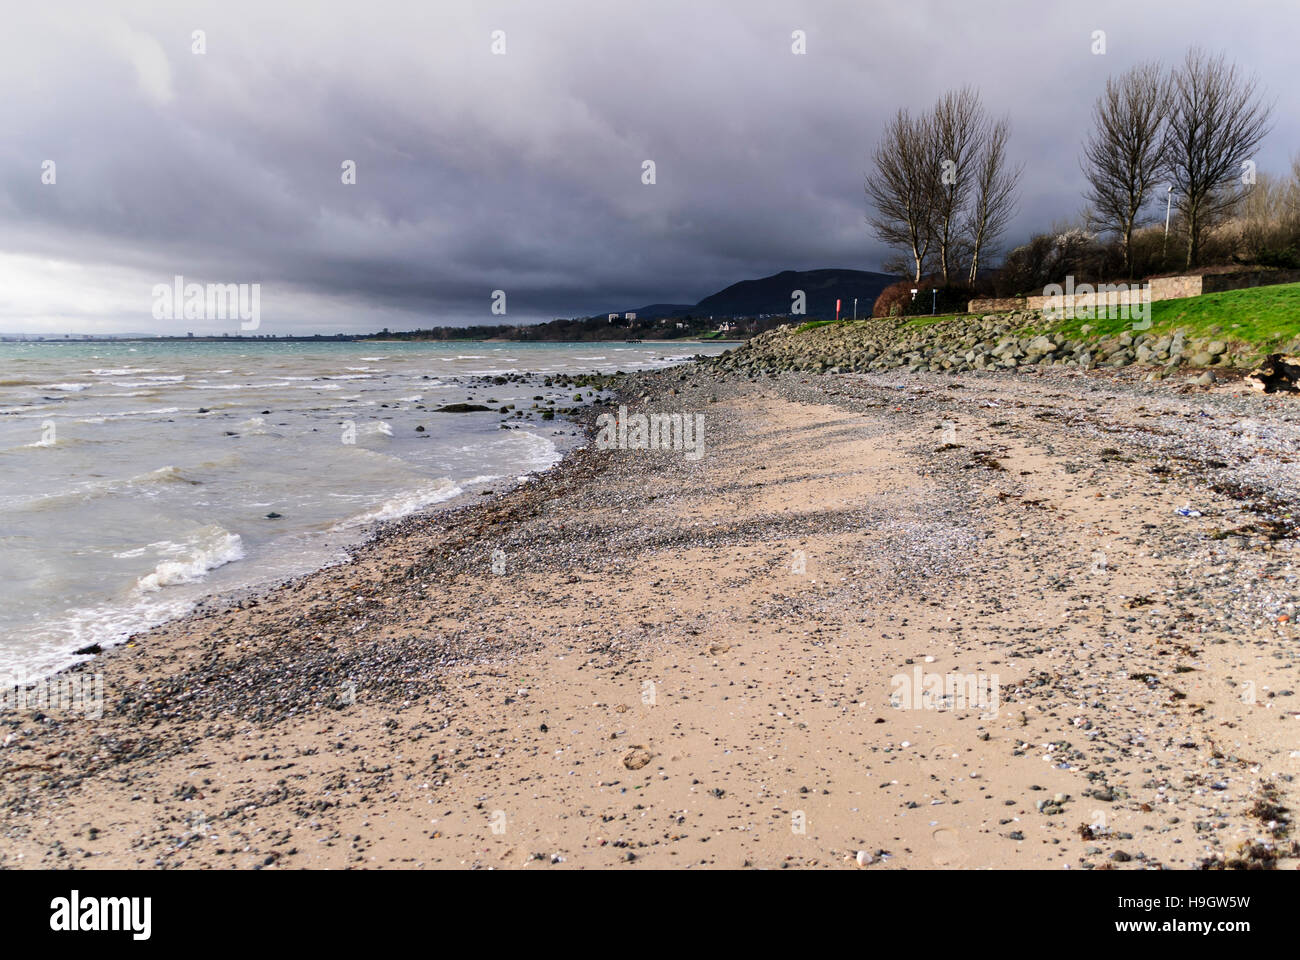 A storm approaches a beach. - Stock Image